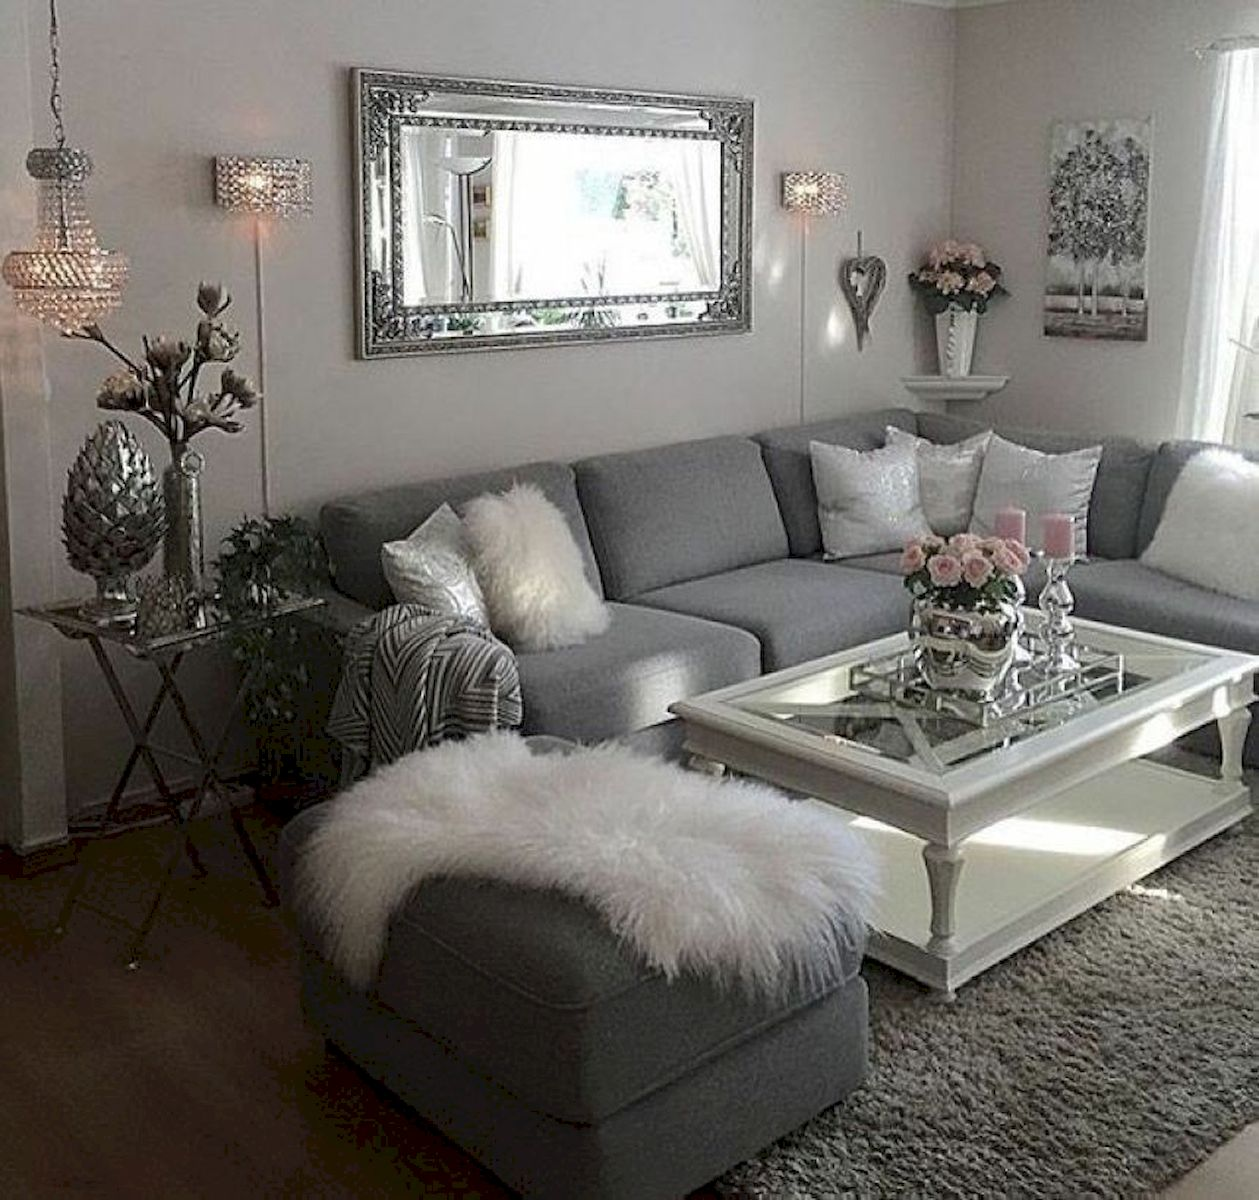 75+Awesome Apartement Decorating Ideas (18)